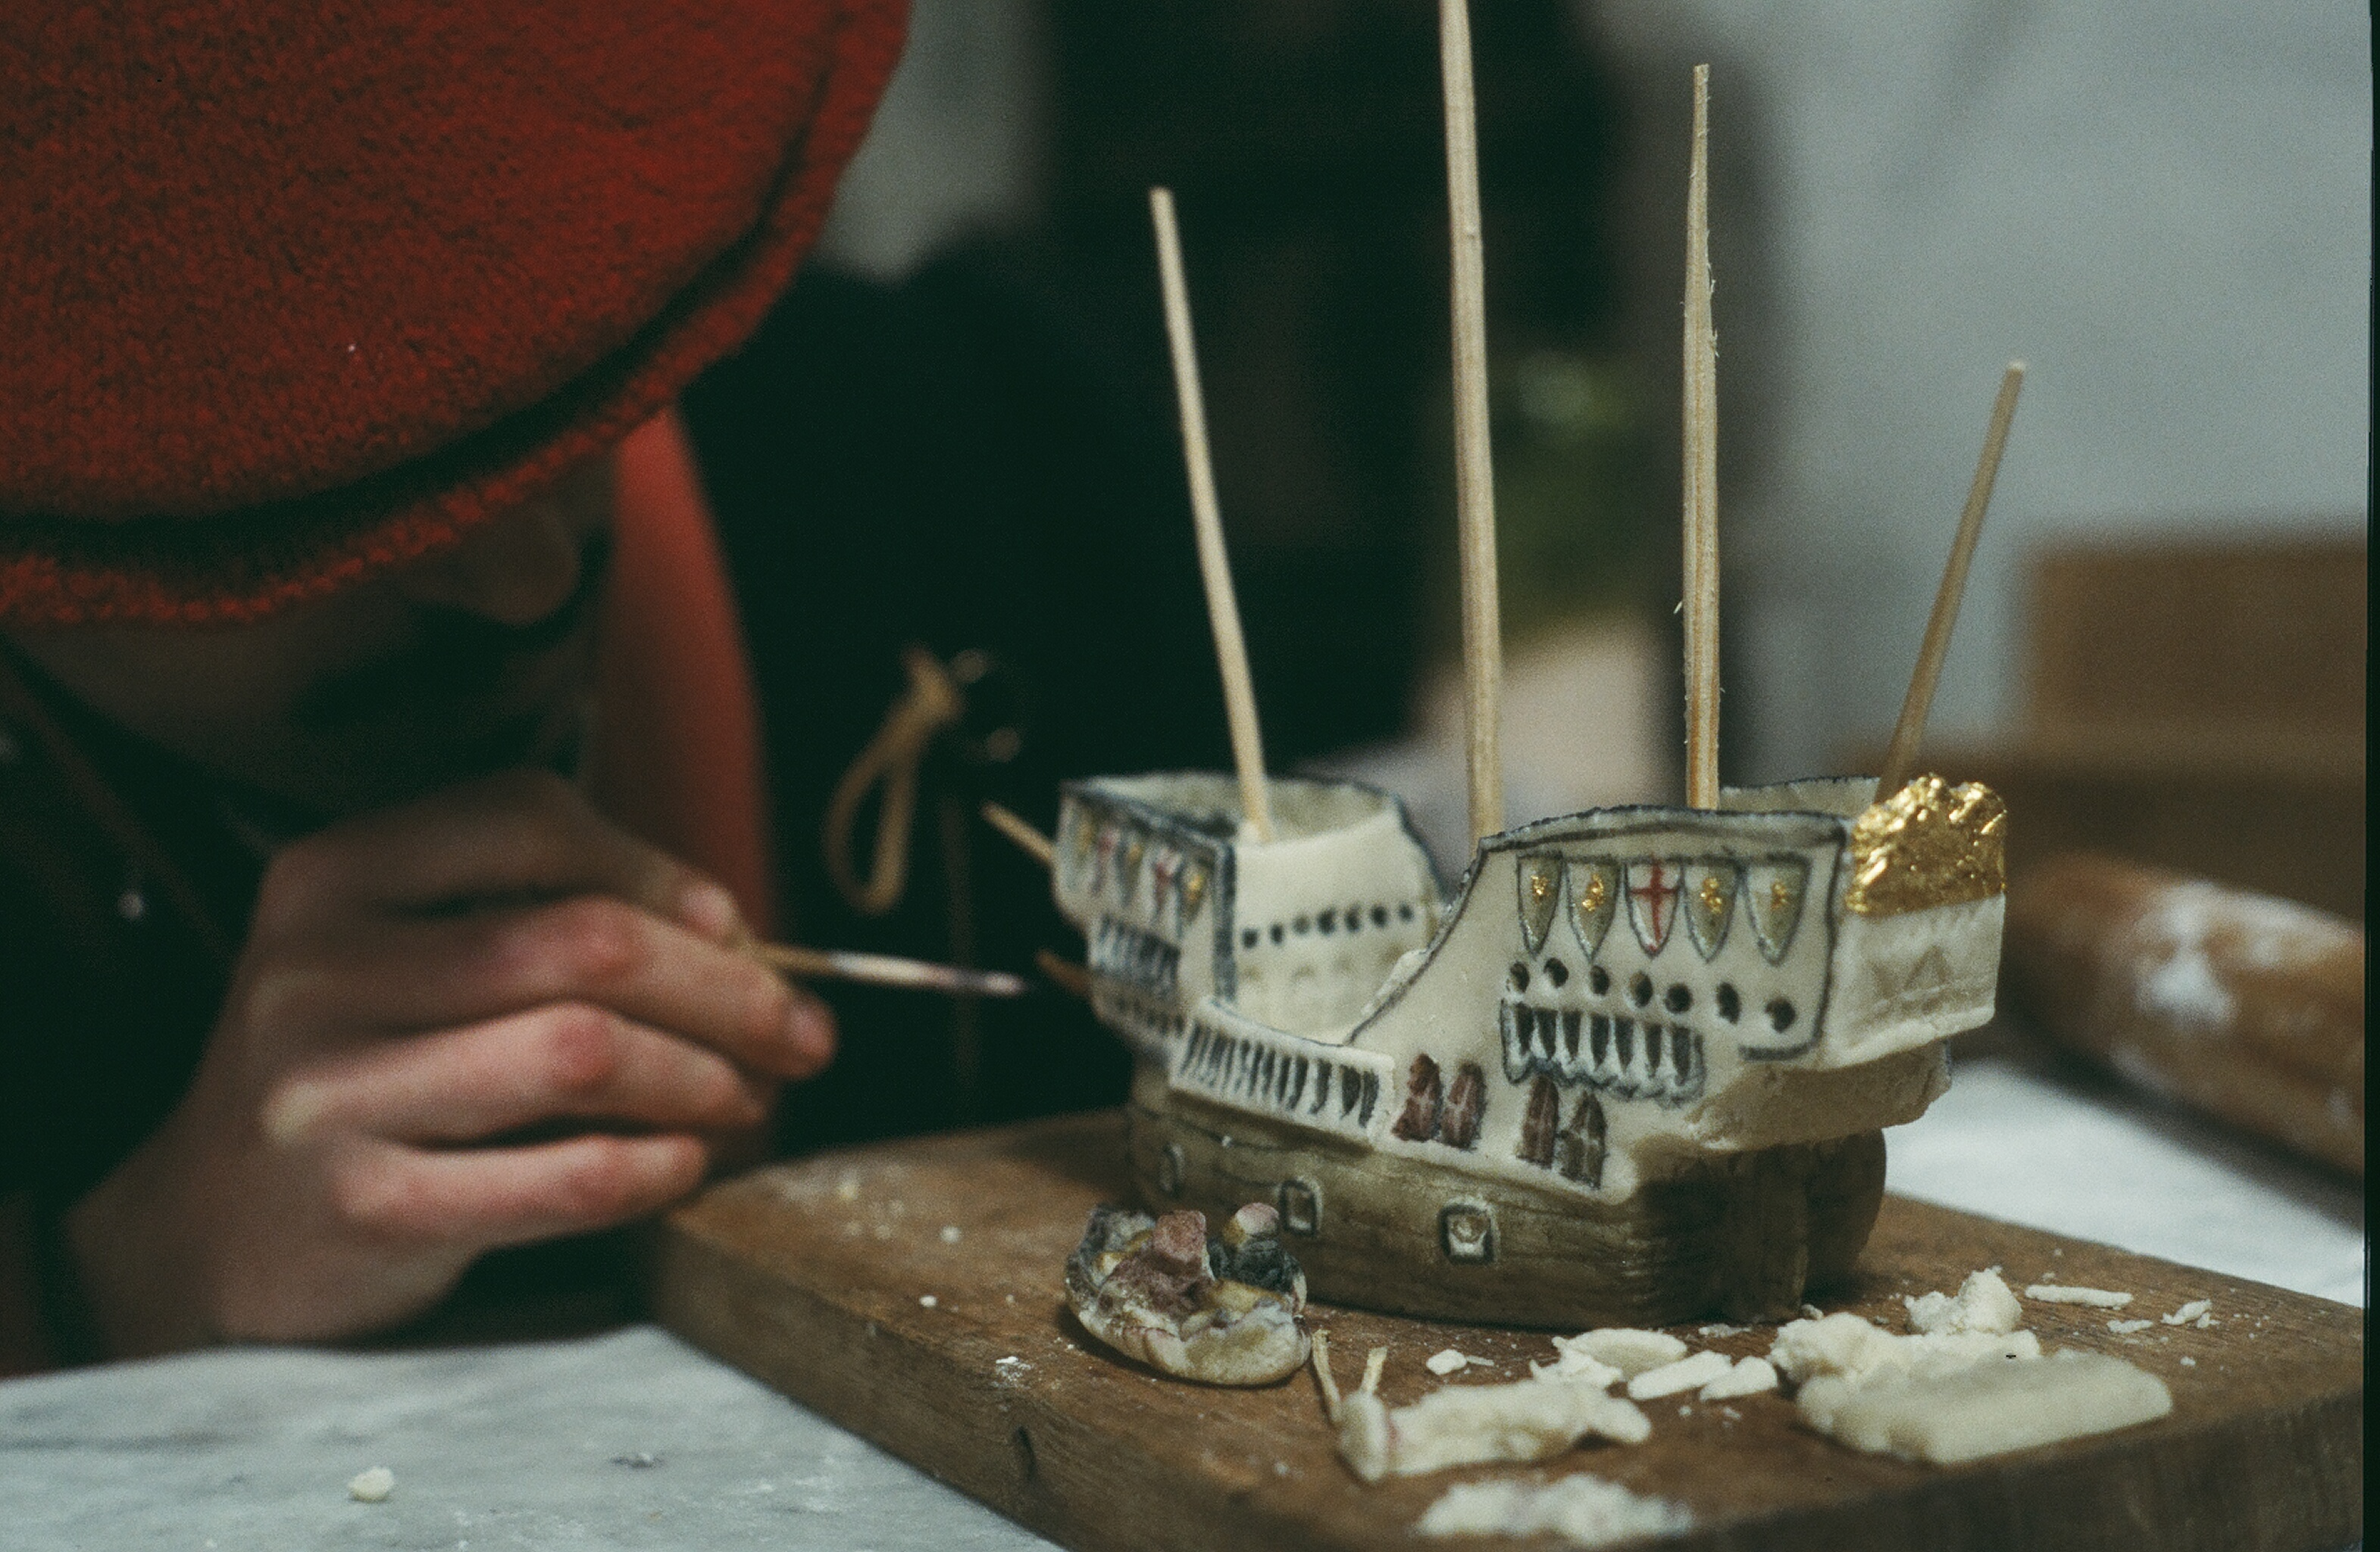 A photograph of a reenactment in a Tudor kitchen, with a cook carefully painting a small ship, made from sugar paste.